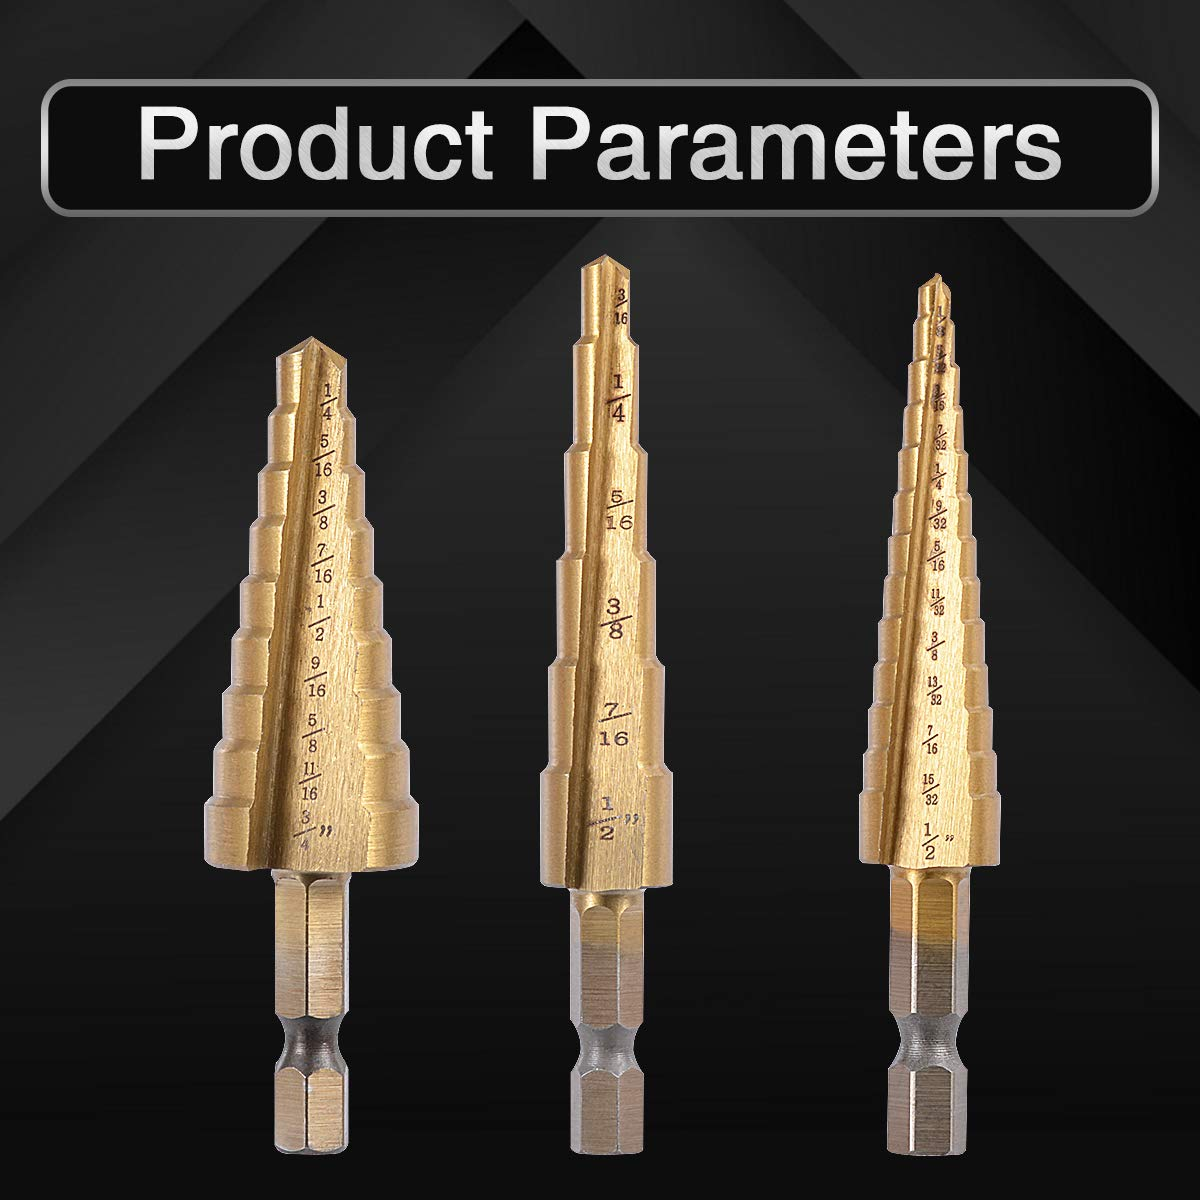 3//16-1//2,1//4-3//4,1//8-1//2 Inch Total 28 Sizes KATUR 3Pcs Classic Titanium Step Drill Bit Set Universal Cone Saw 1//4 Inch Hex Shank HSS Double Straight Groove Cutting Blades Gold